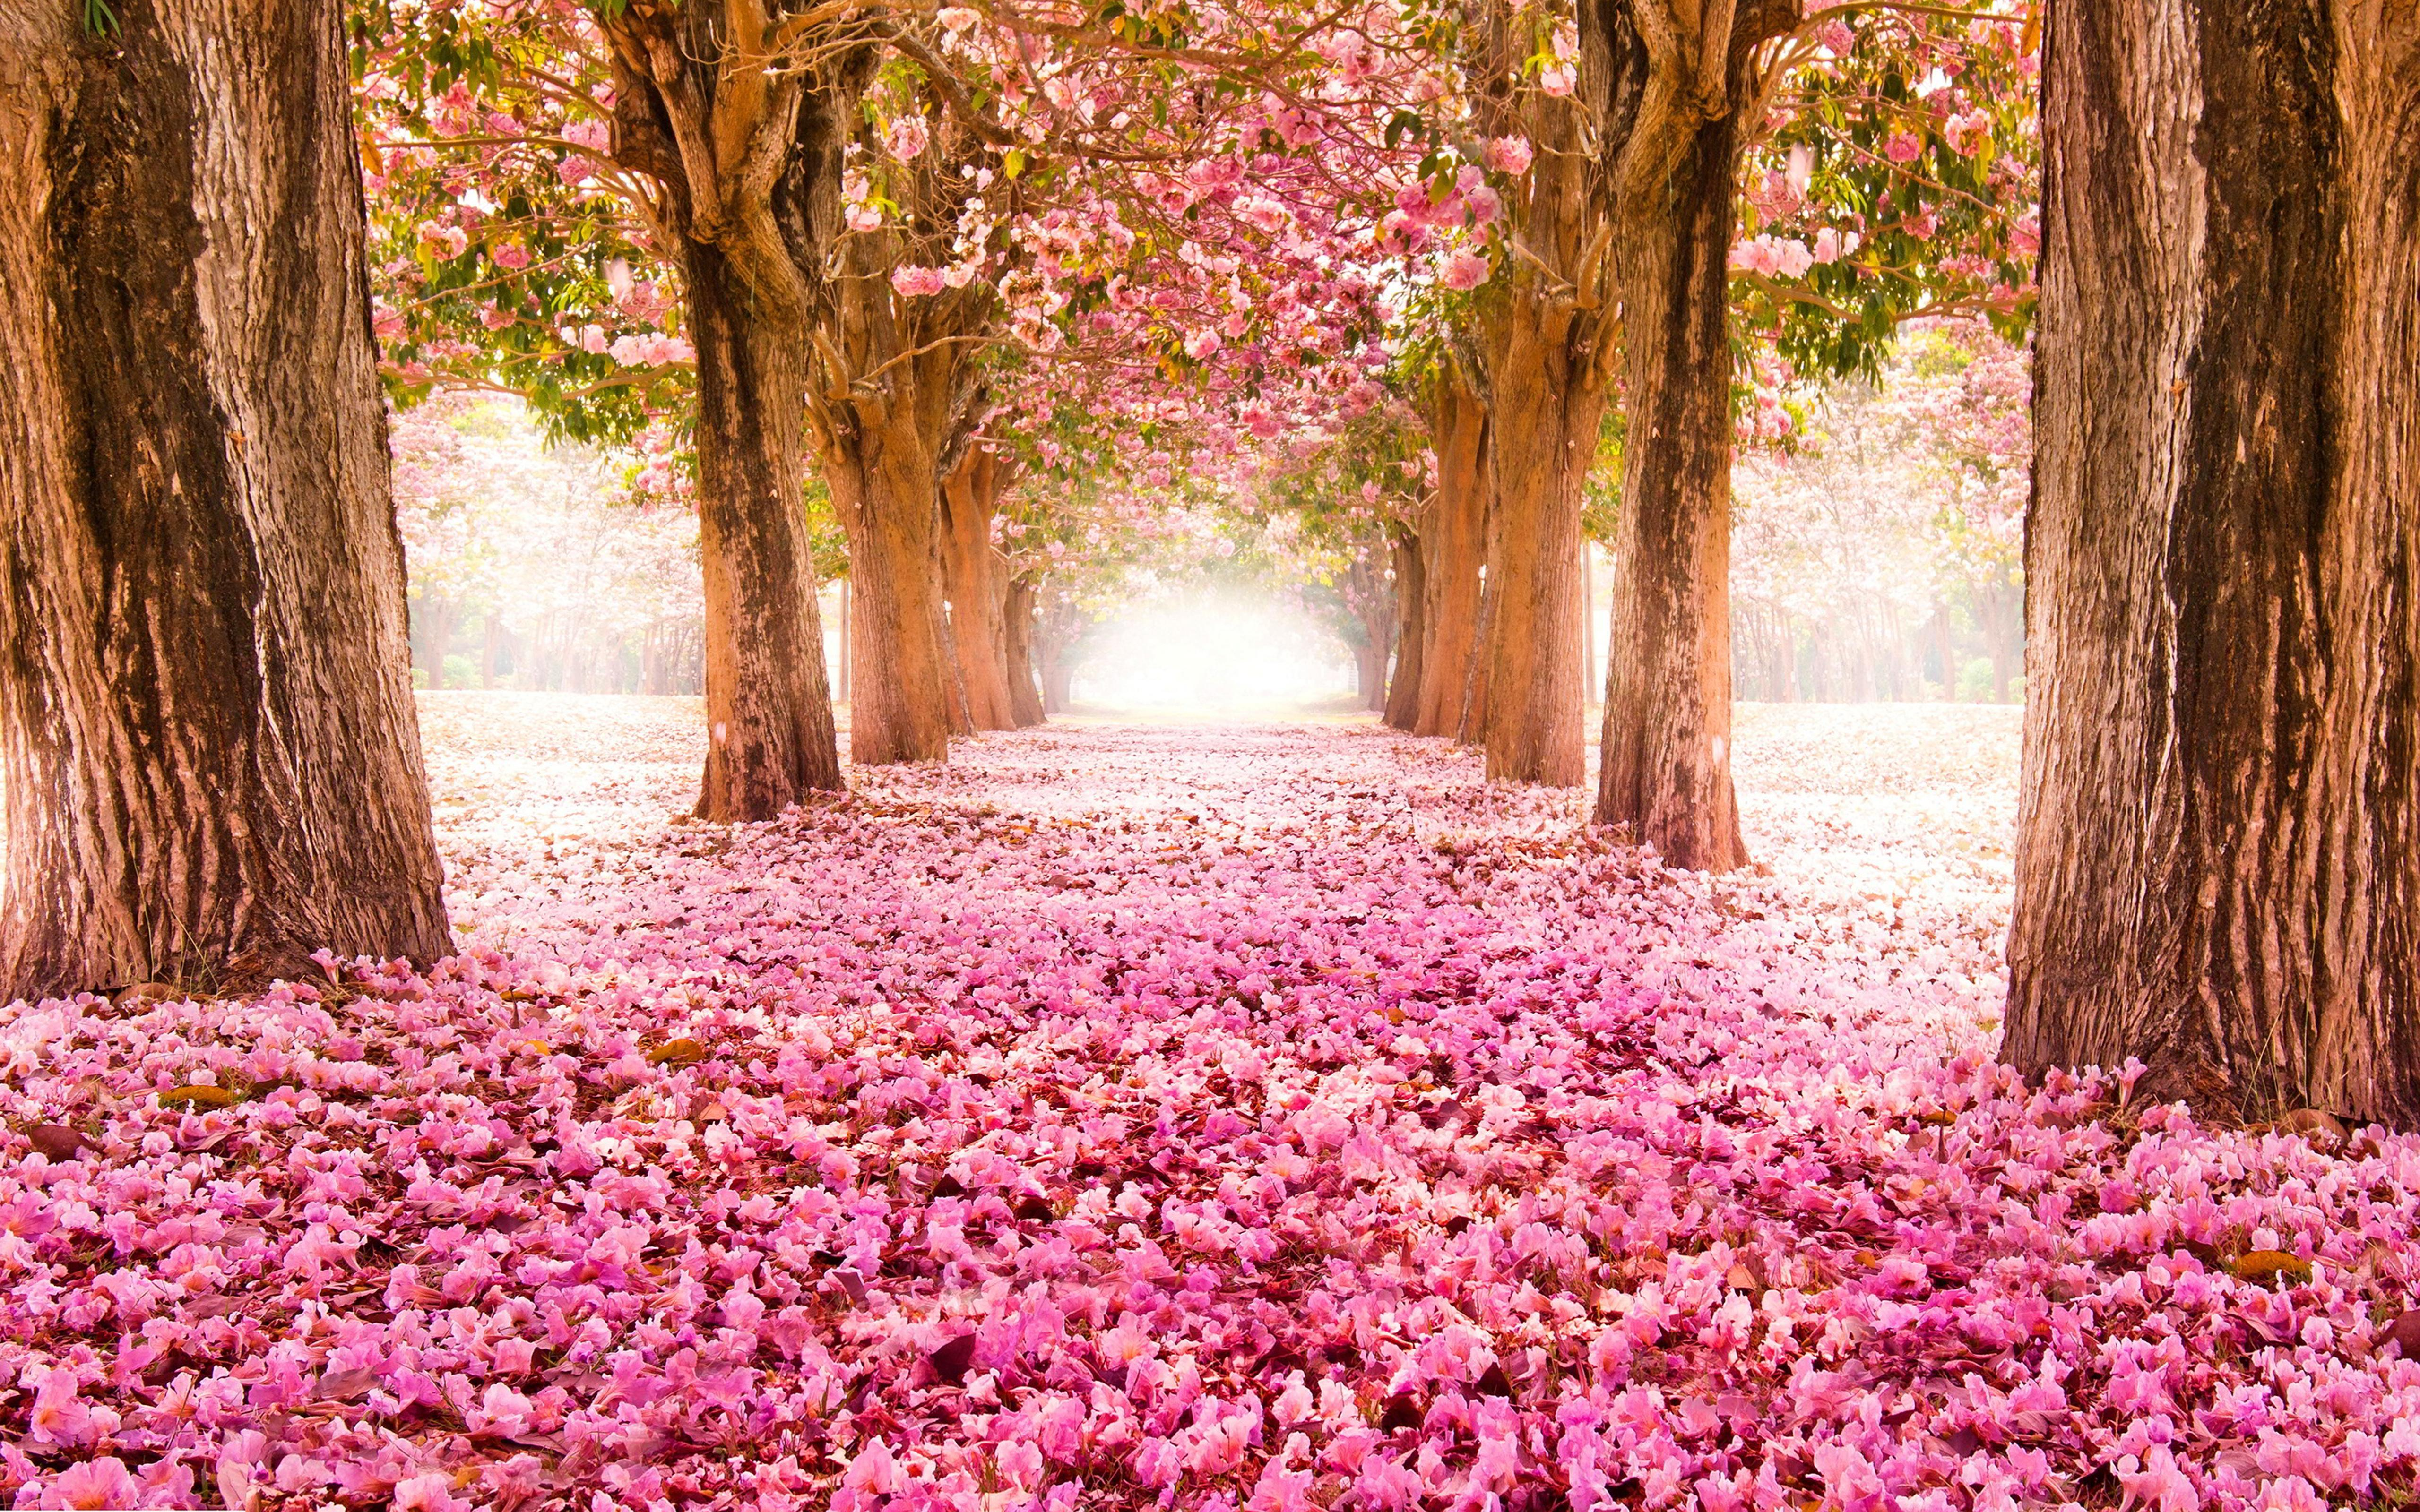 Blooming trees and many pink flowers wallpaper download 5120x3200 download wallpaper 5120x3200 blooming trees and many pink flowers voltagebd Images